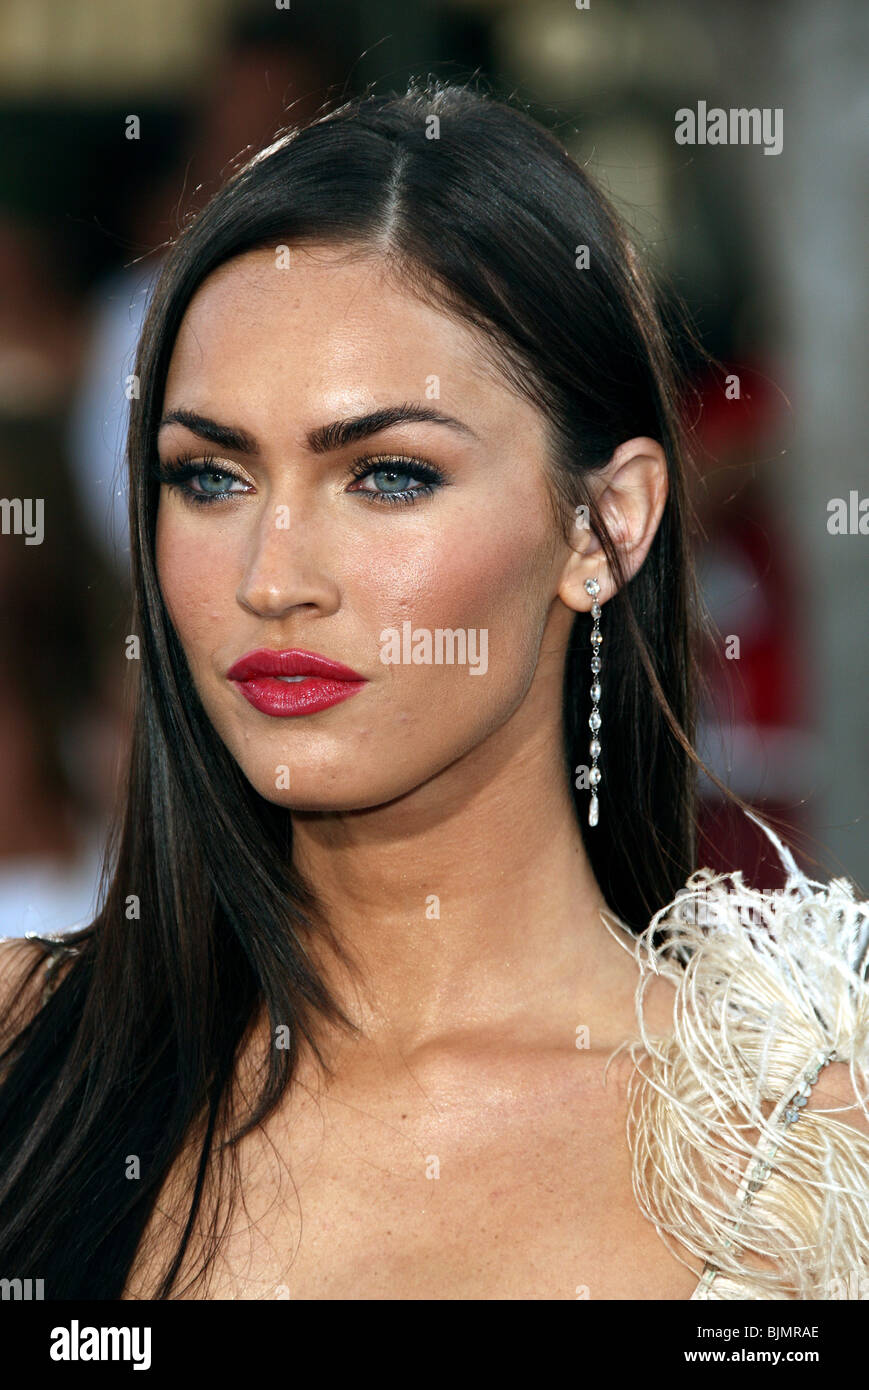 MEGAN FOX TRANSFORMERS PREMIERE WESTWOOD LOS ANGELES USA ...